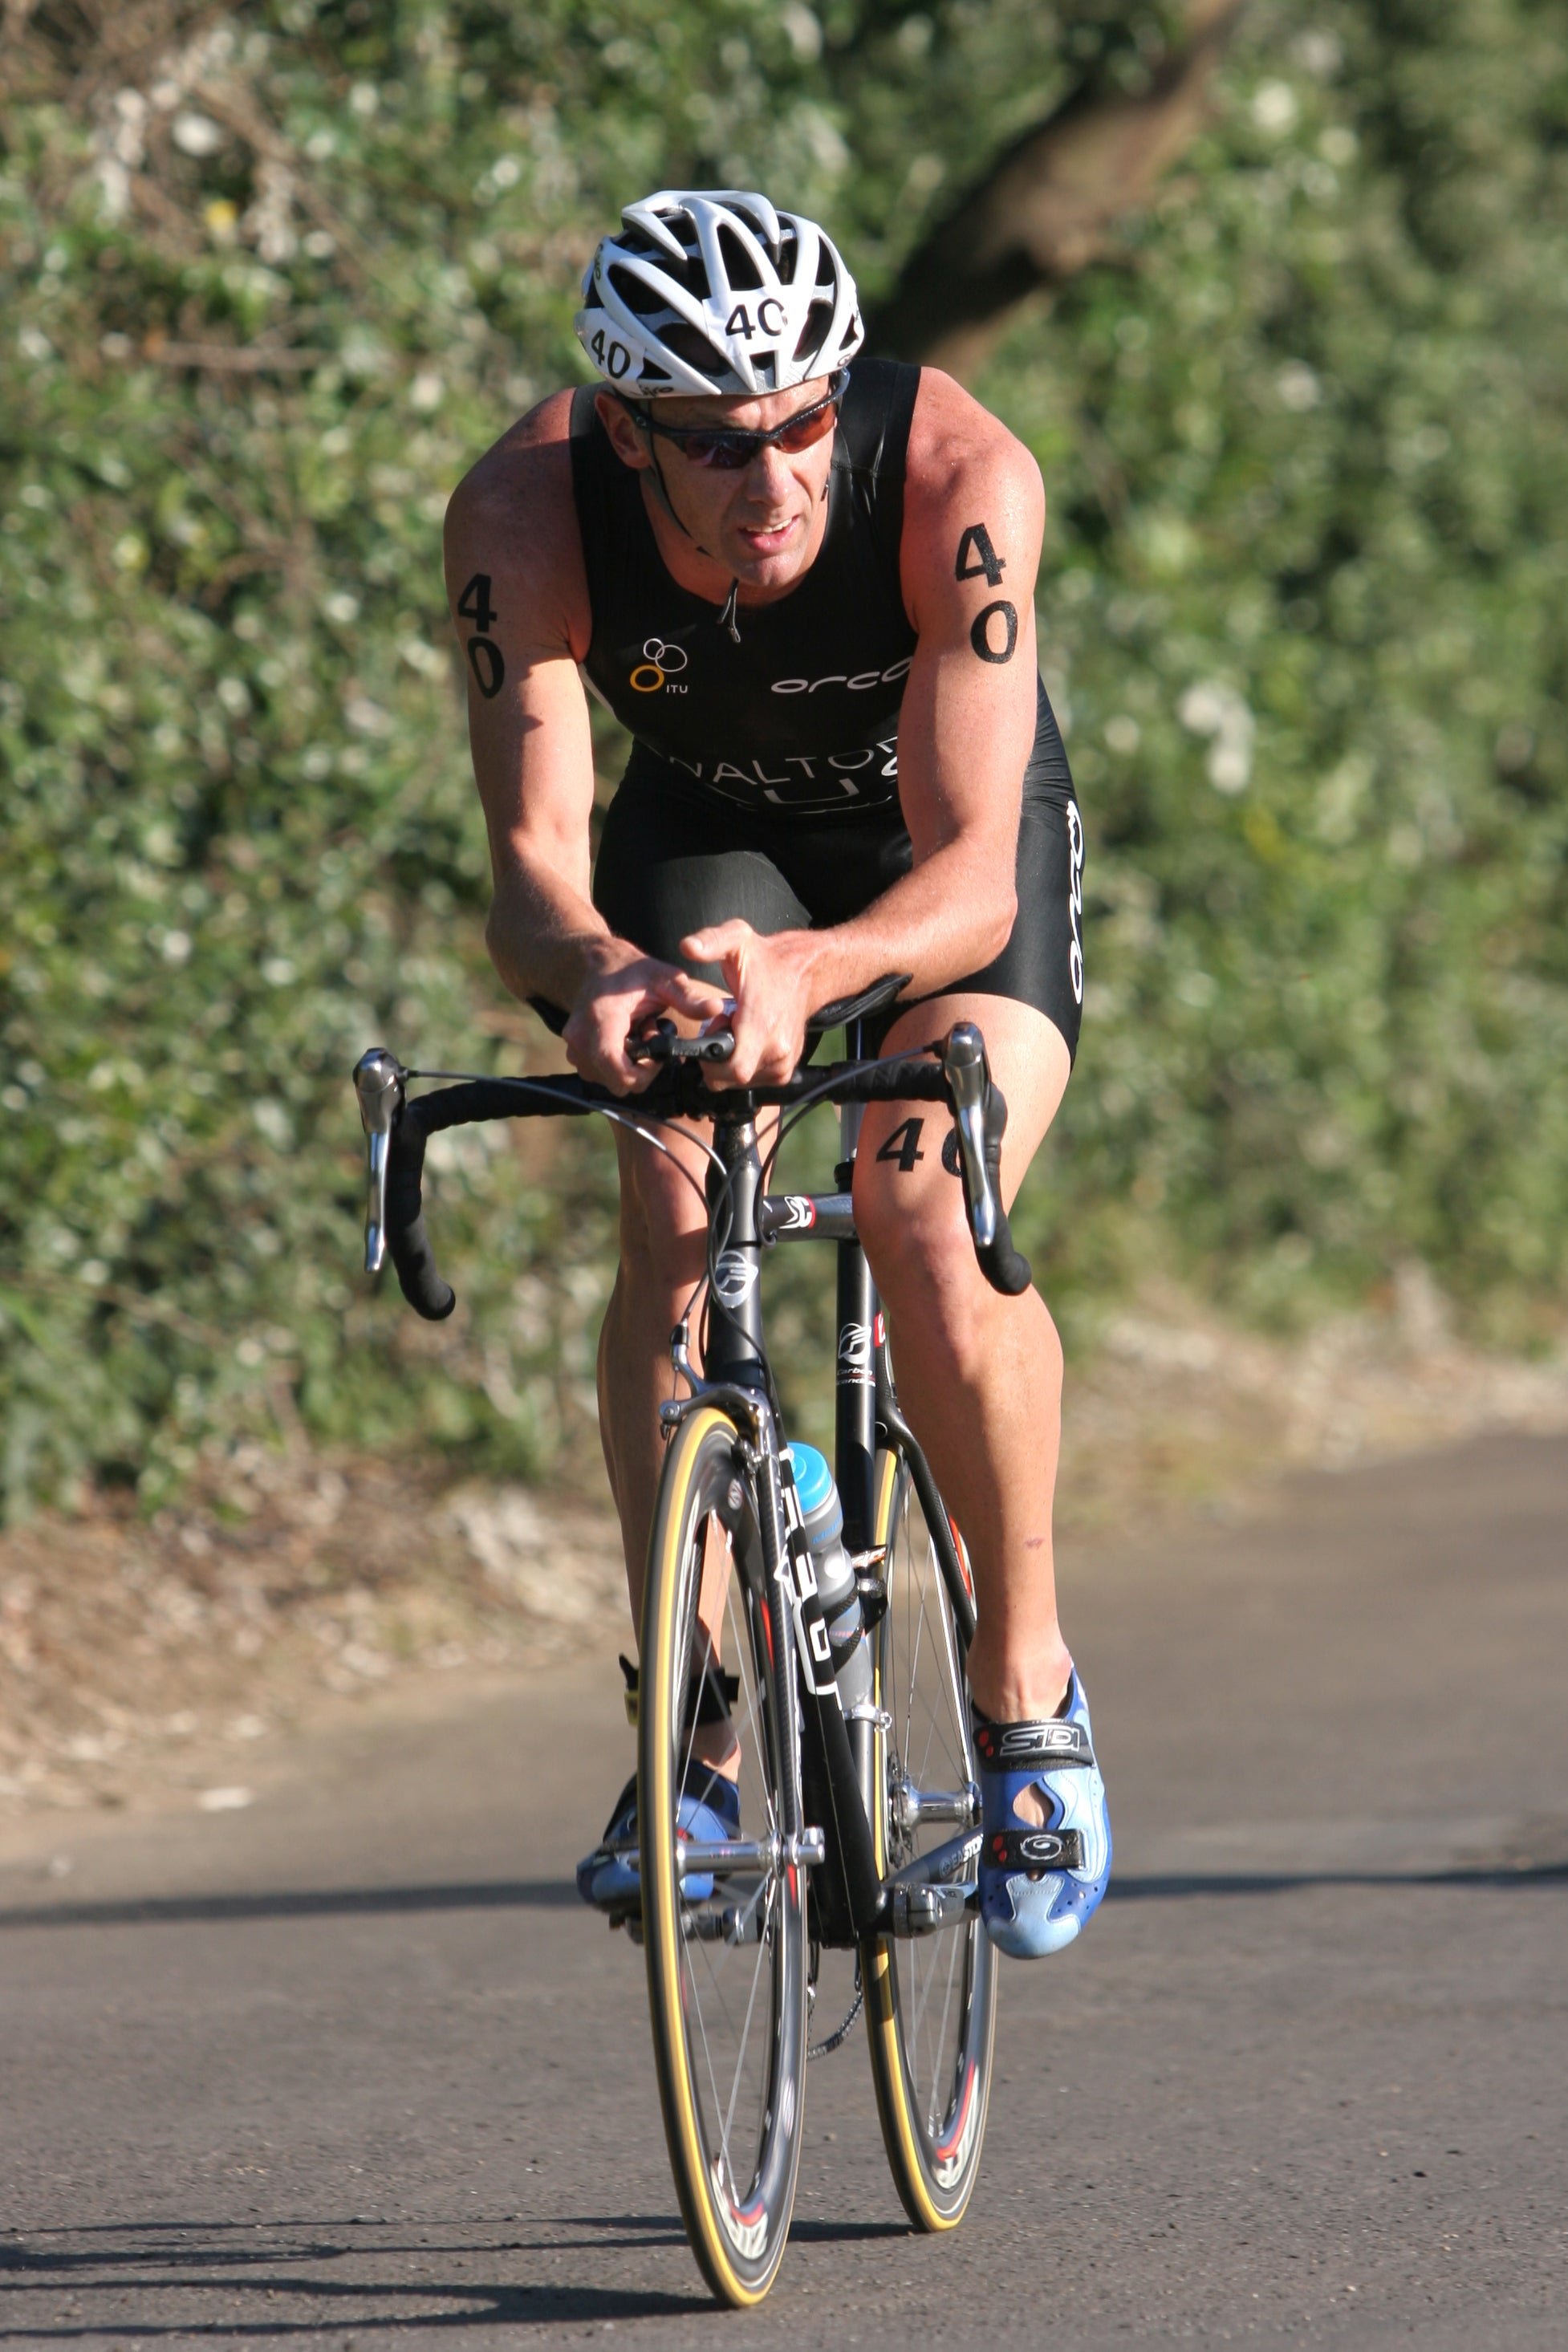 Walton was one of the strongest cyclists in the sport. Photo: Triathlon.org